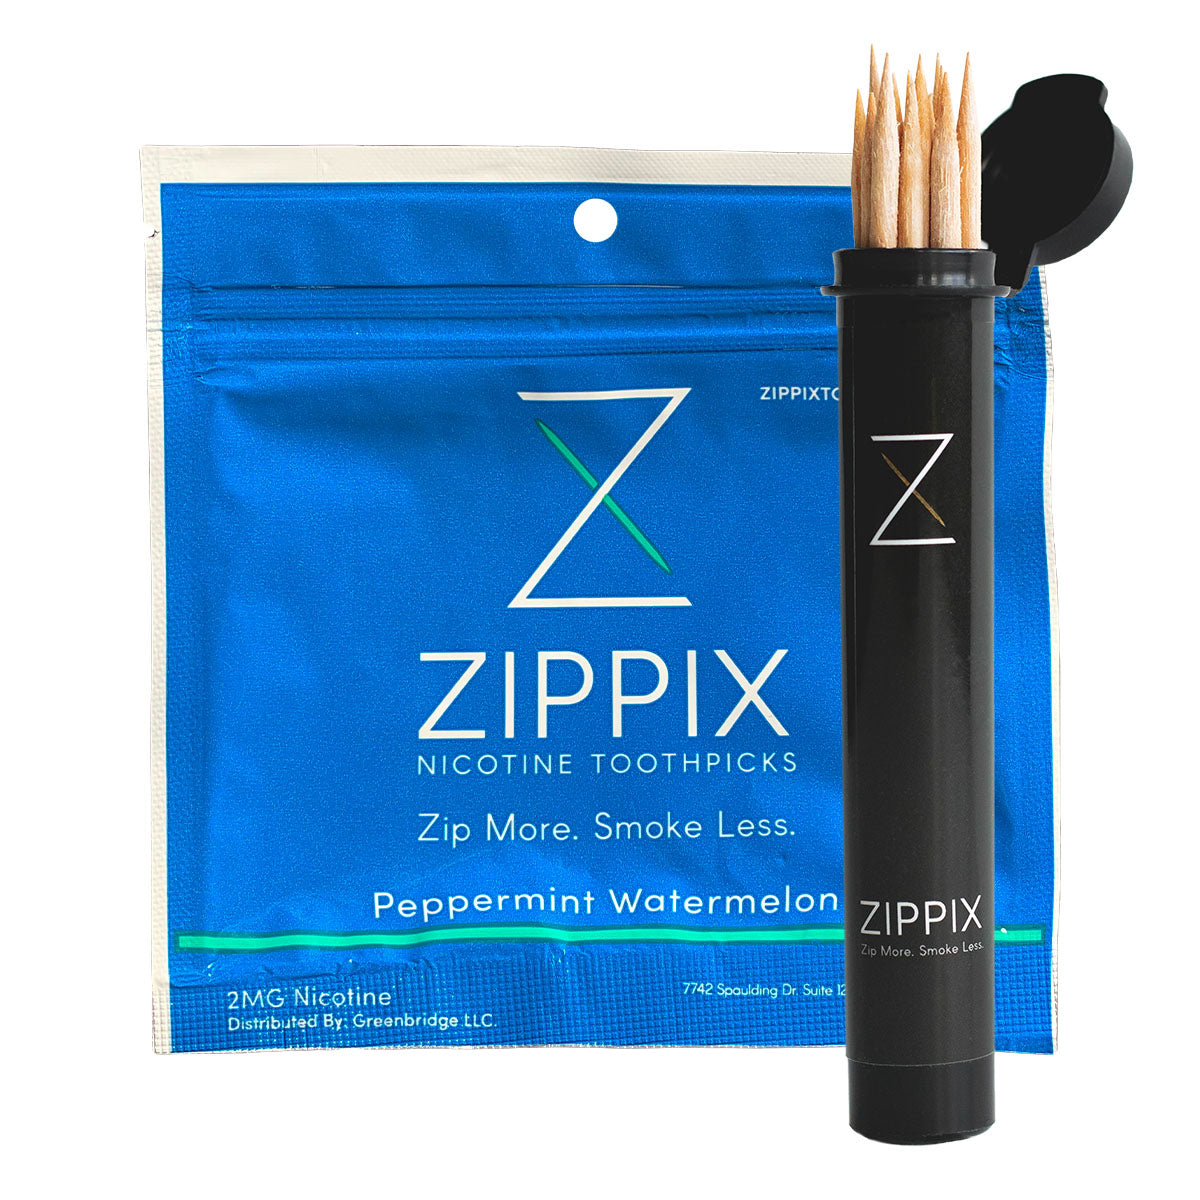 Zippix Large Packs